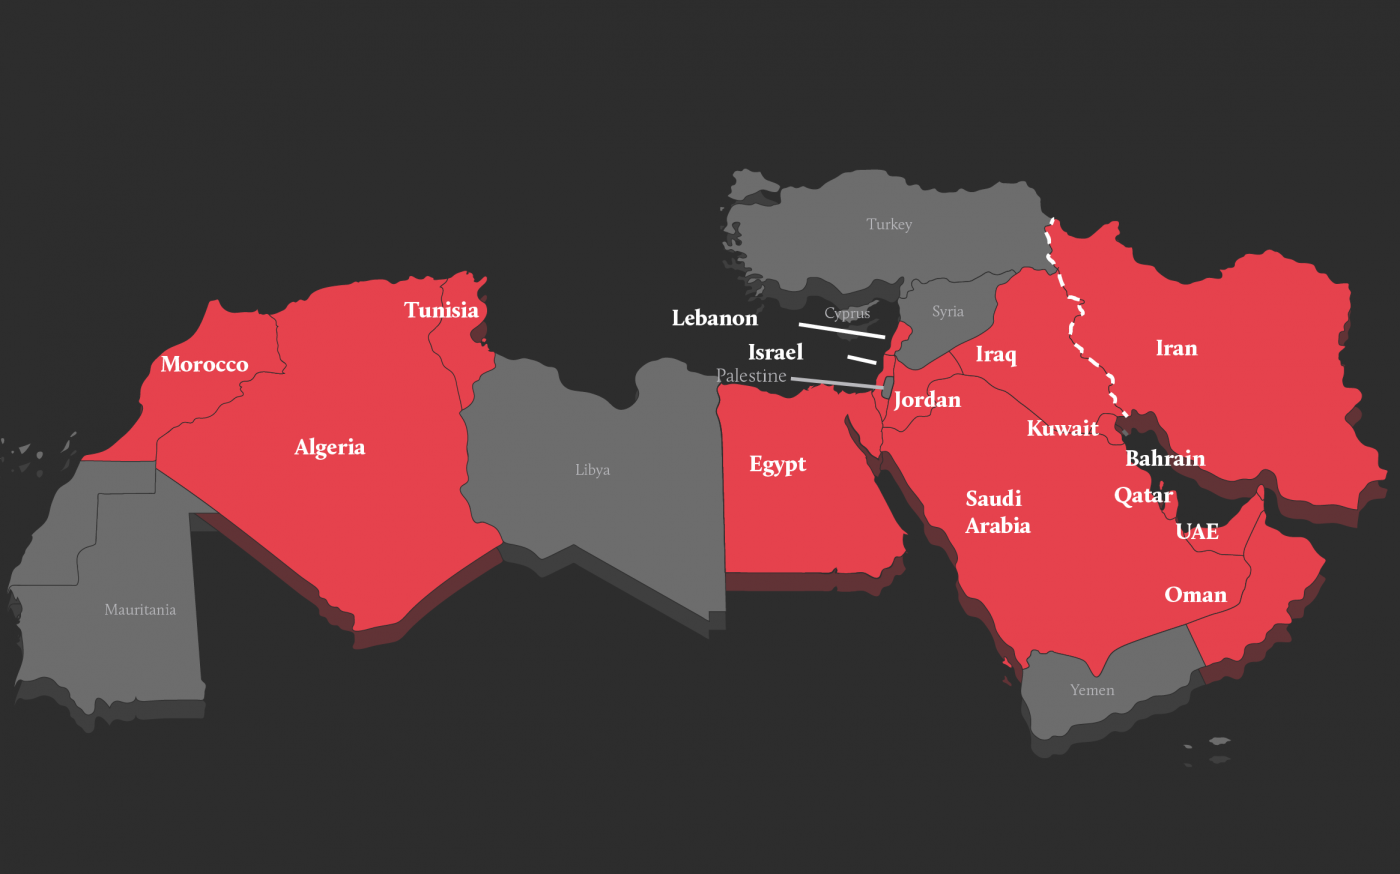 Coronavirus in the Middle East and North Africa: What Do We Know so Far?